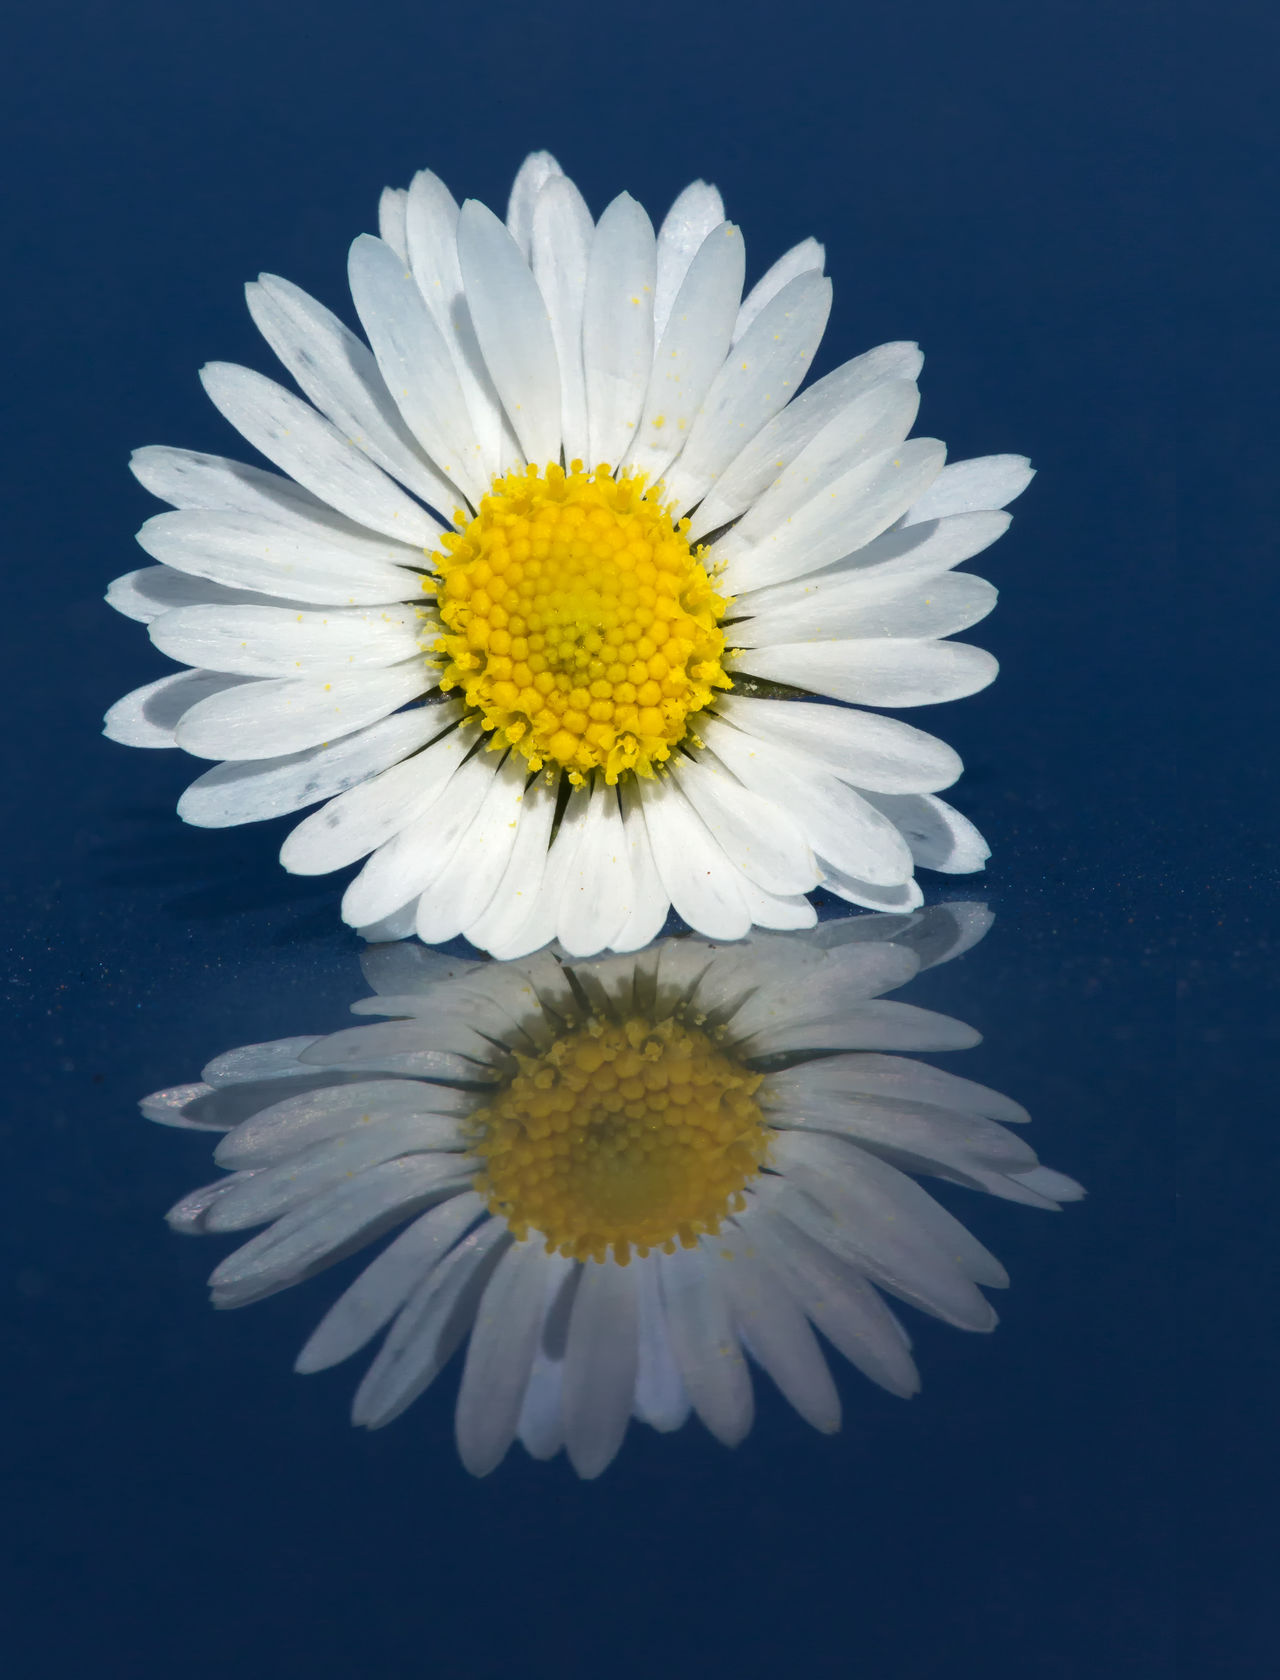 Daisy Reflection in Colour Beauty Beauty In Nature Close-up Daisy Day Flower Flower Head Fragility Freshness Nature No People Outdoors Petal Yellow